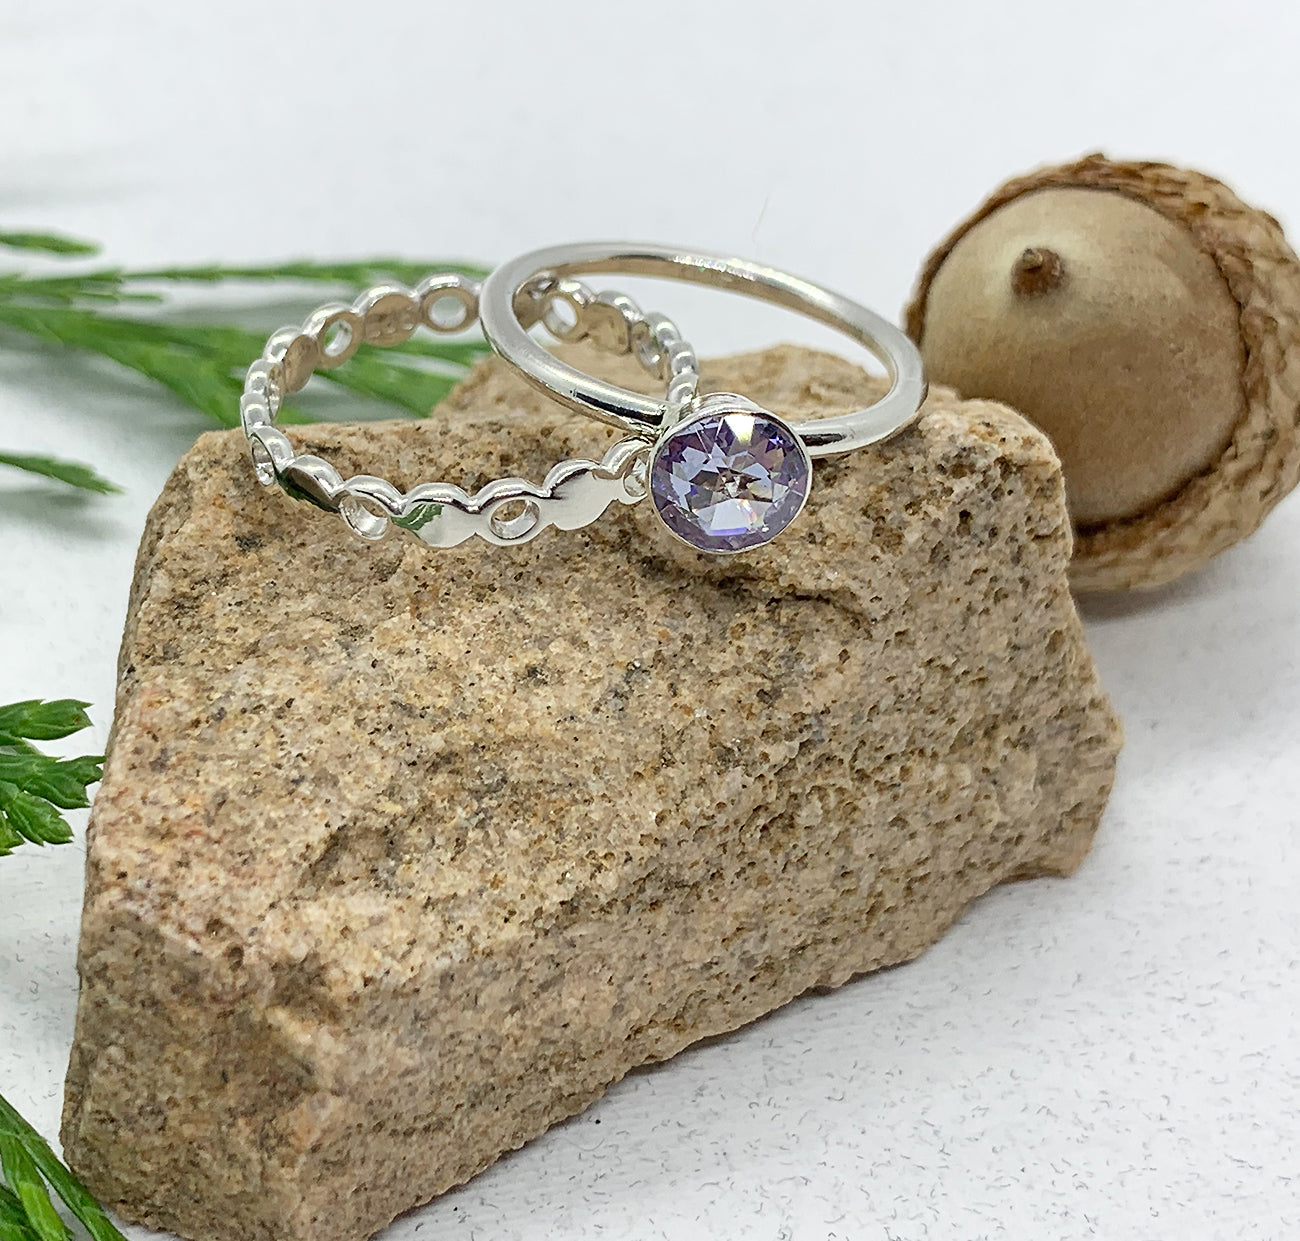 Lavender Engagement & Peek-A-Boo Set